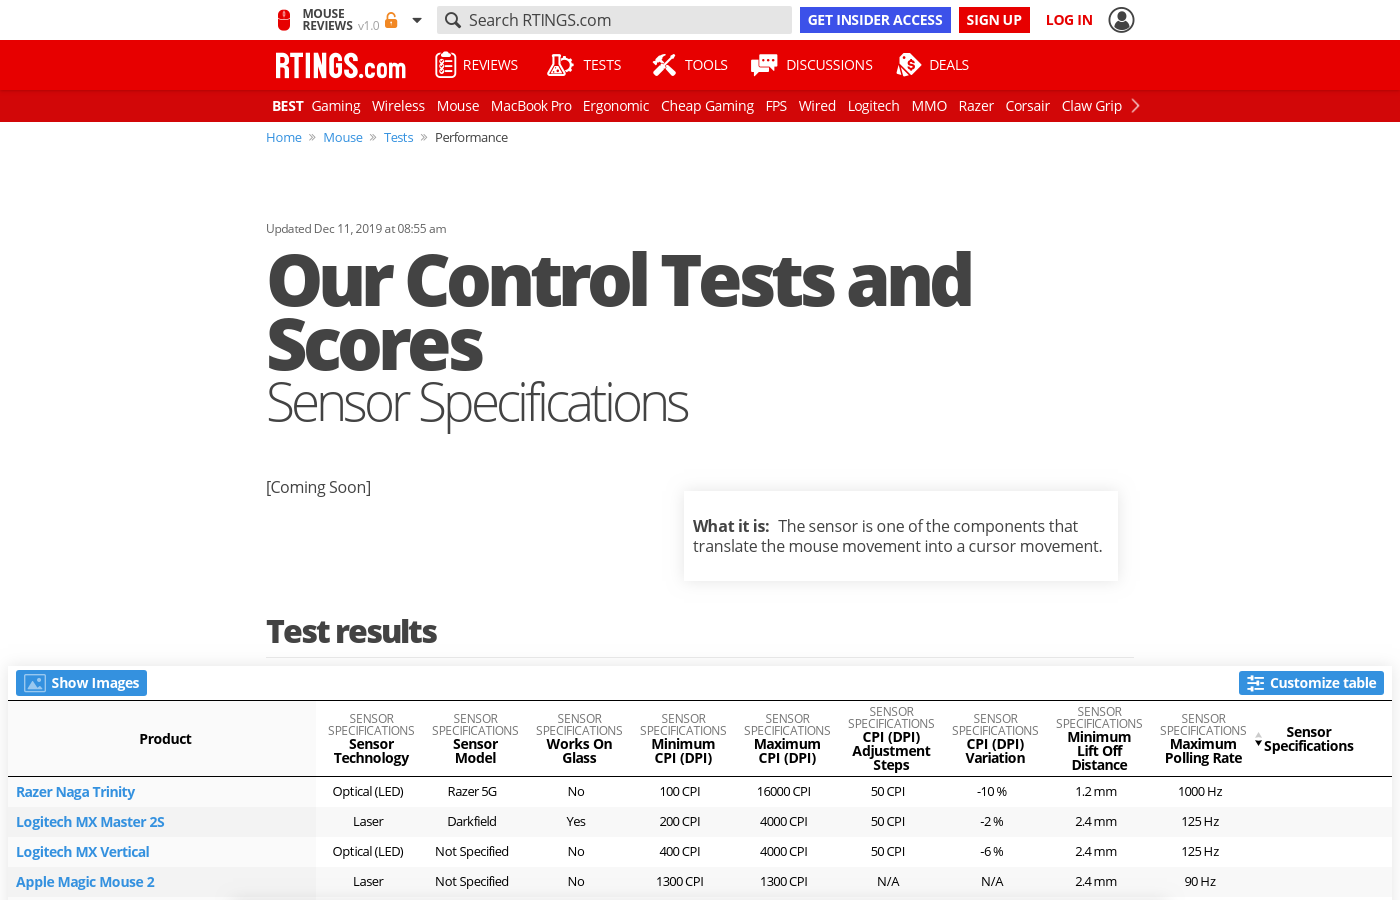 Our Performance Tests and Scores